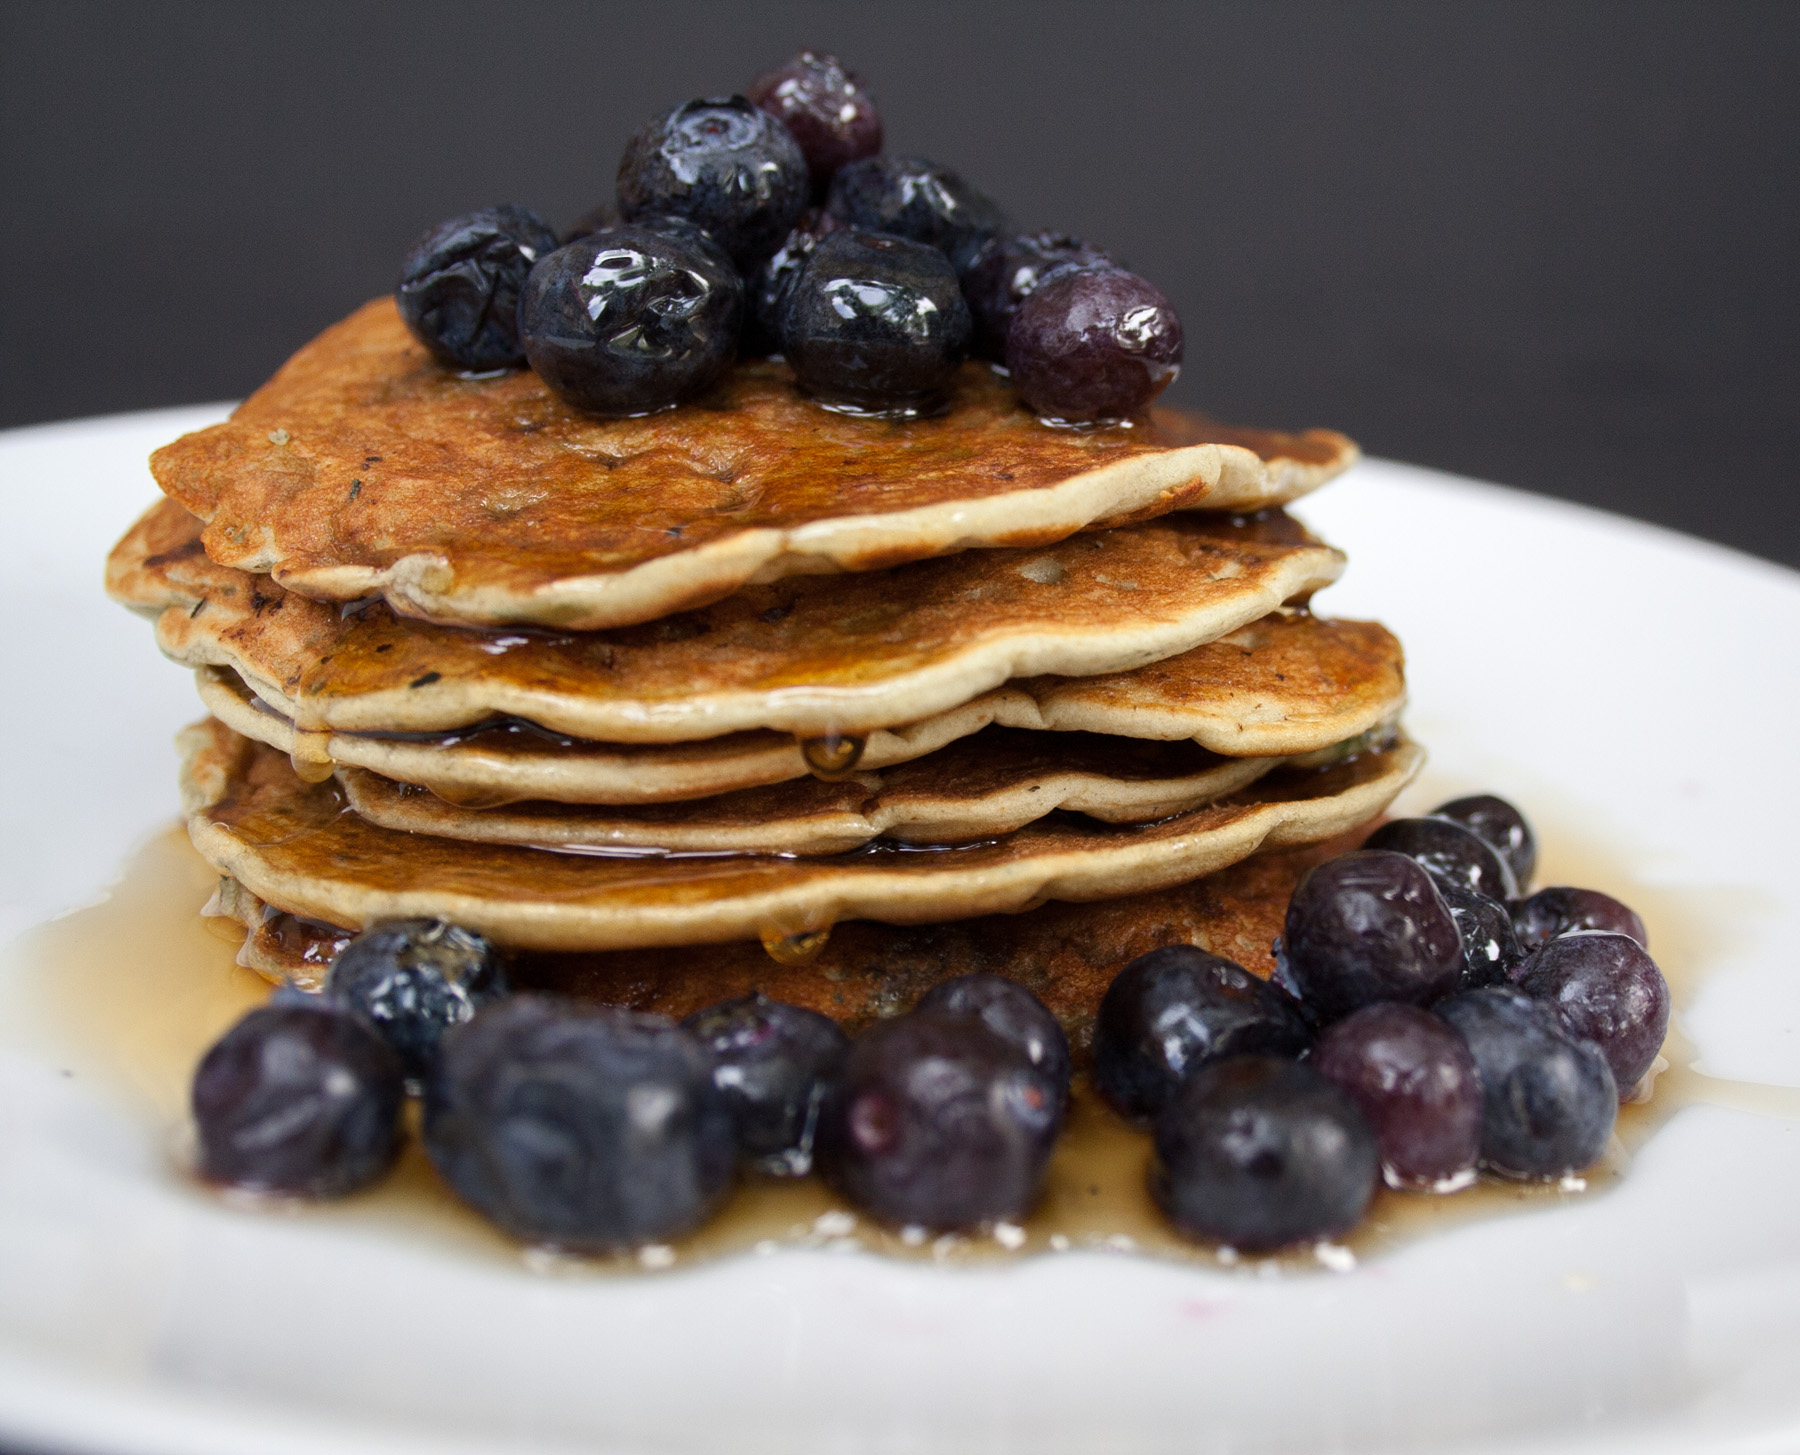 Vegan Gluten Free Blueberry Pancakes - Create Mindfully